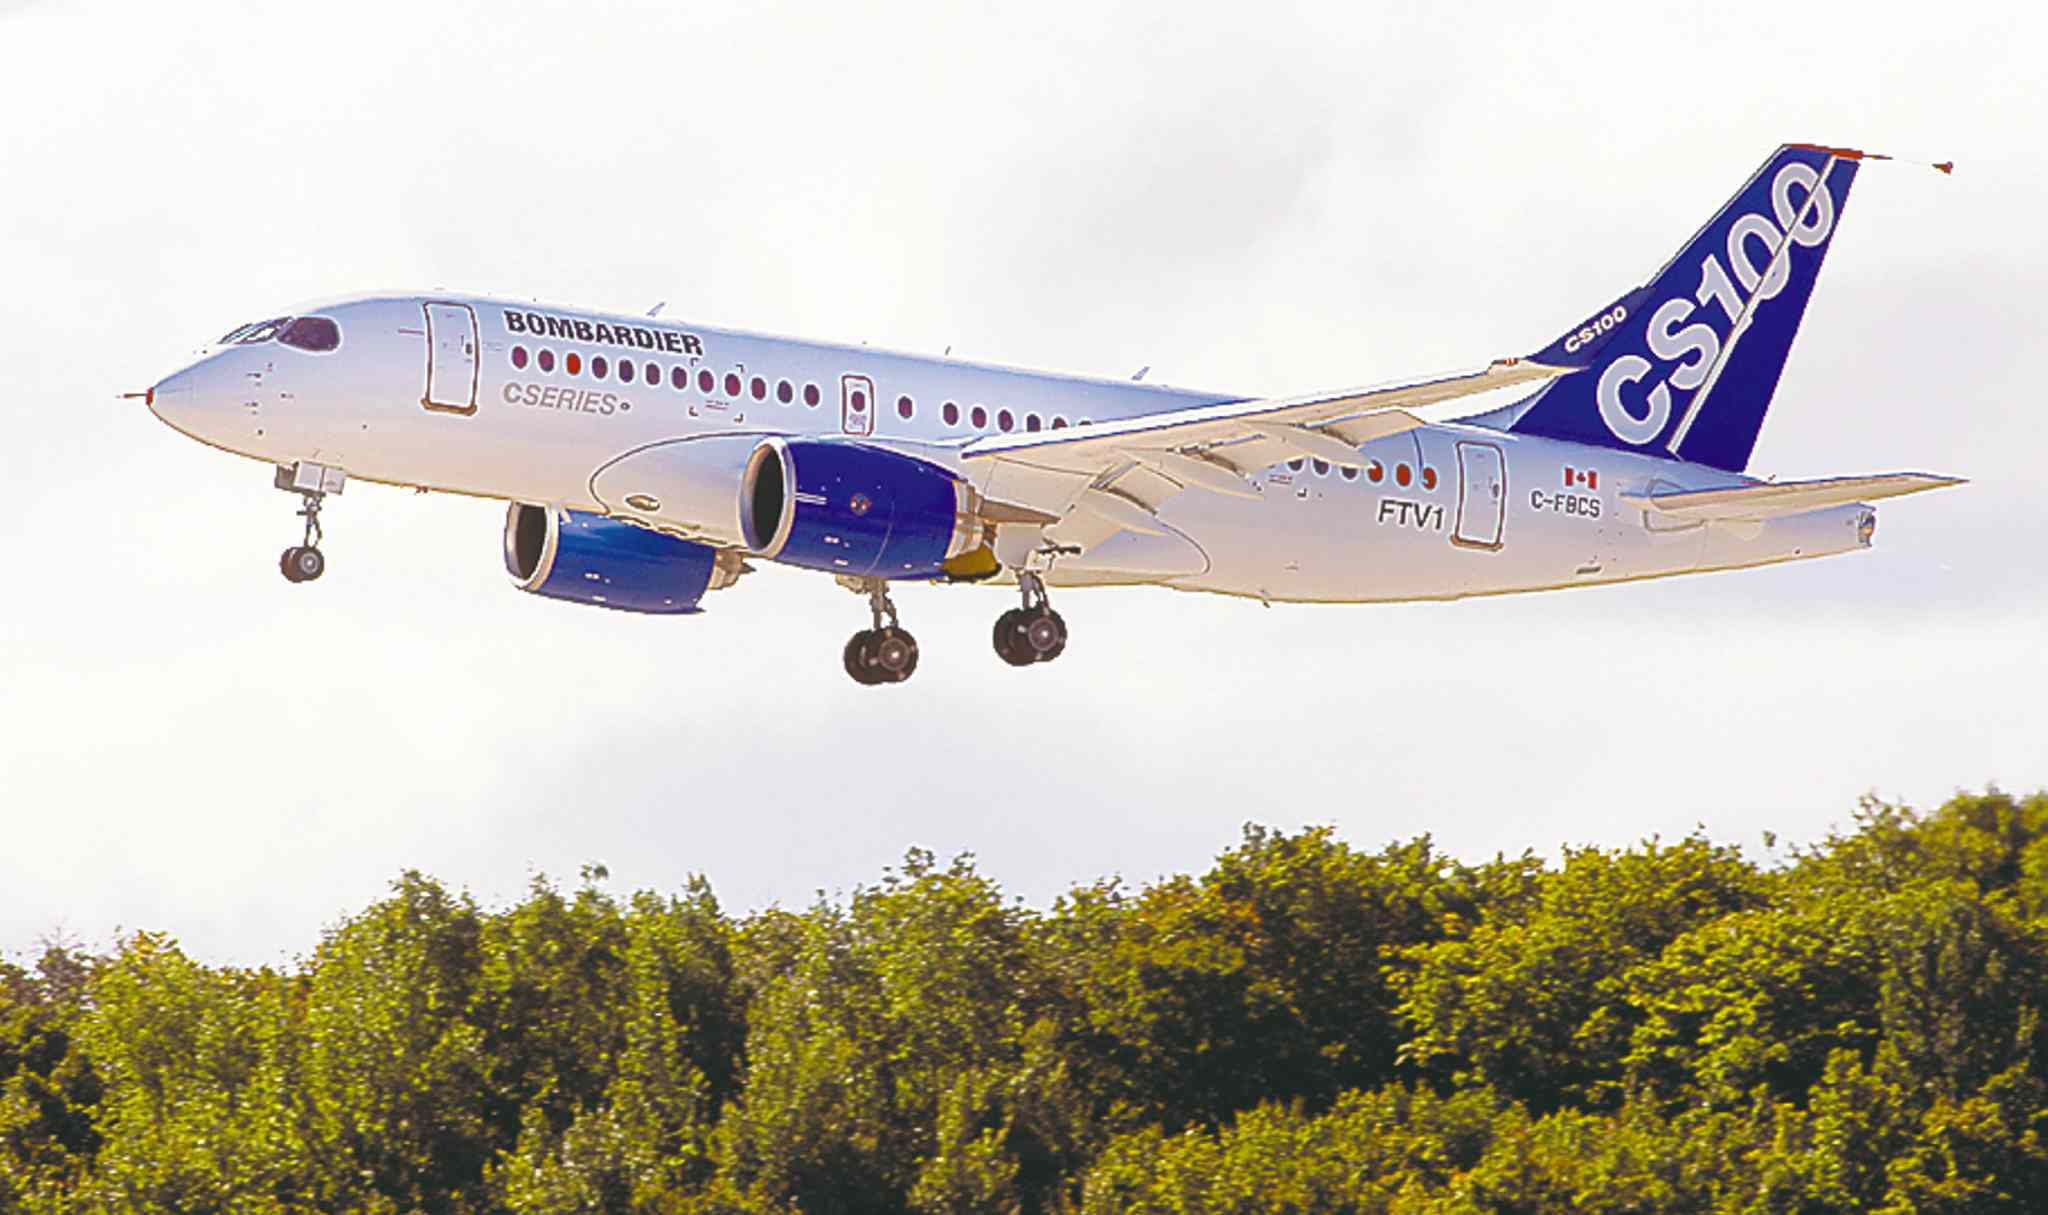 Bombardier hopes the CSeries100 will take away business from Airbus and Boeing.